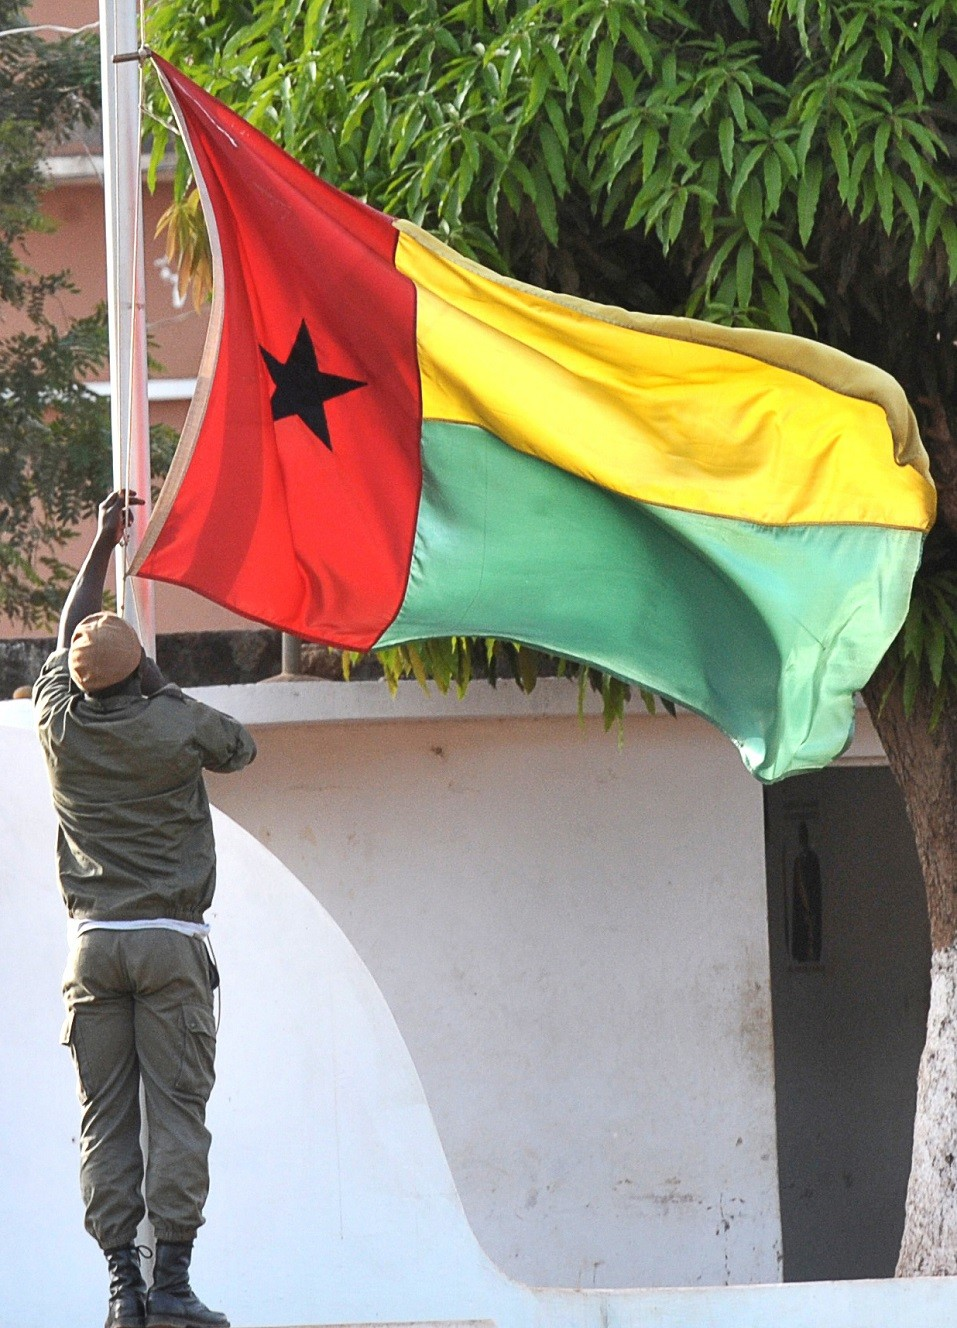 A soldier of Guinea-Bissau lowers the flag